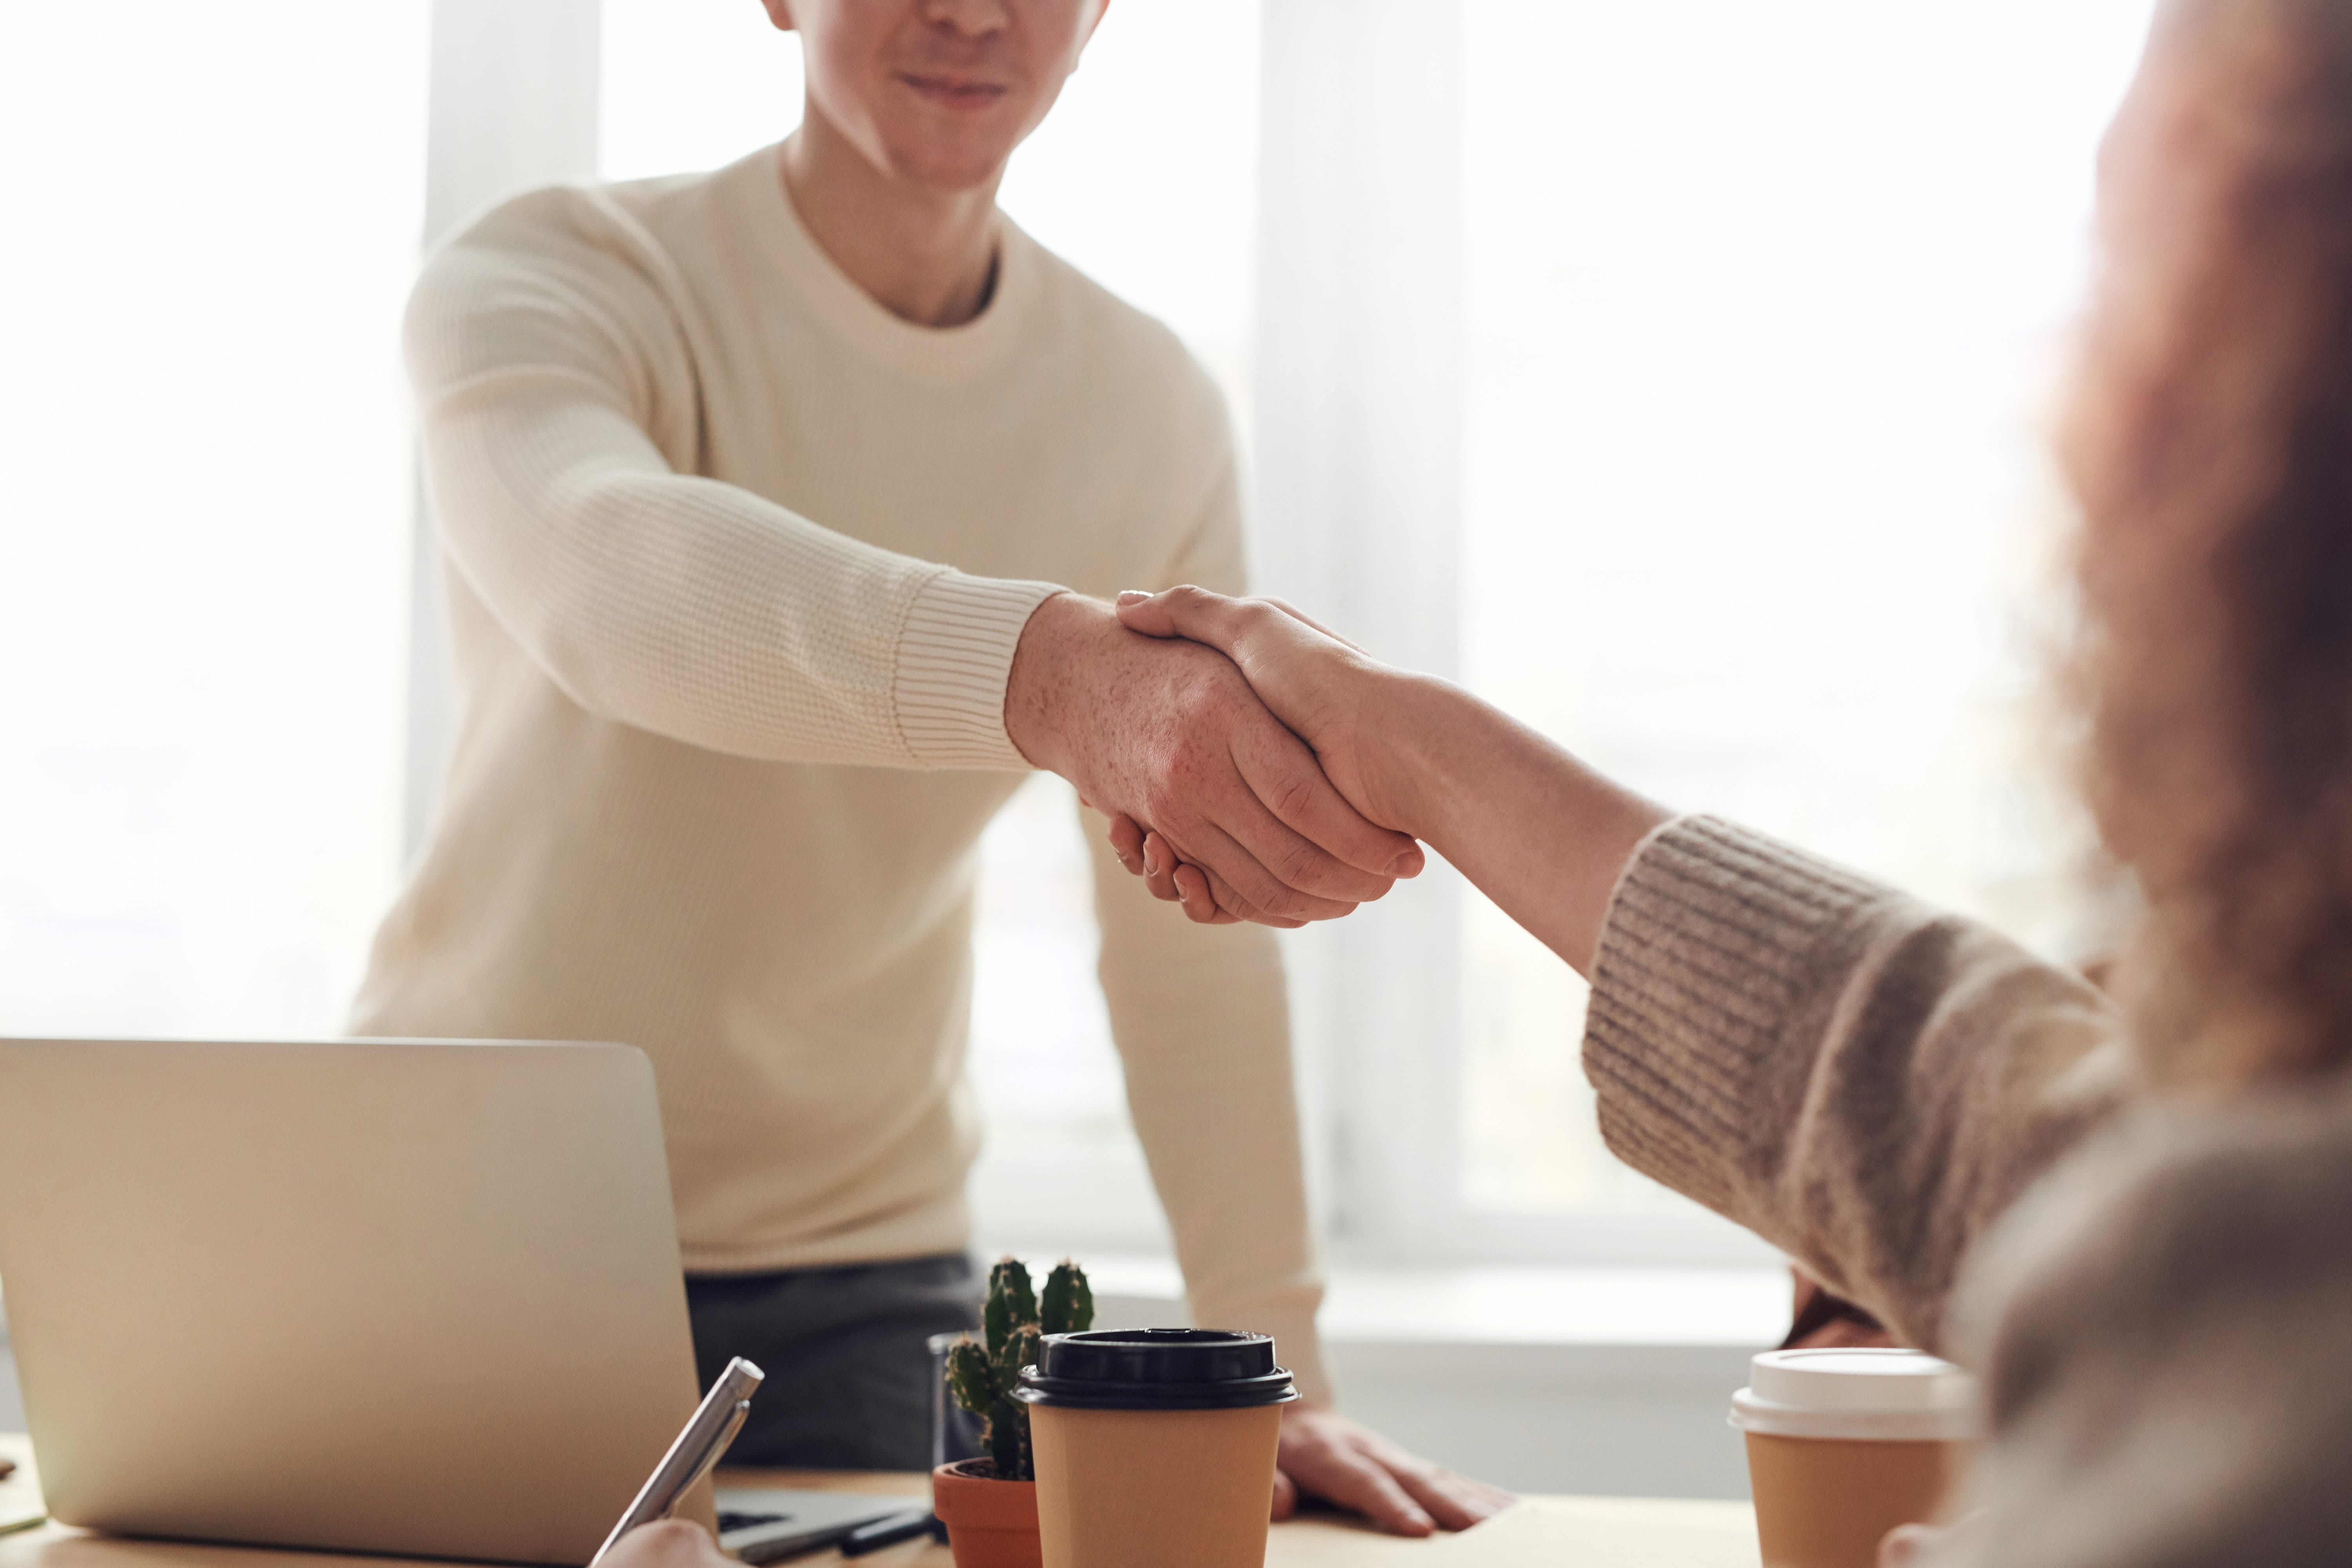 man shaking hands with woman in office setting